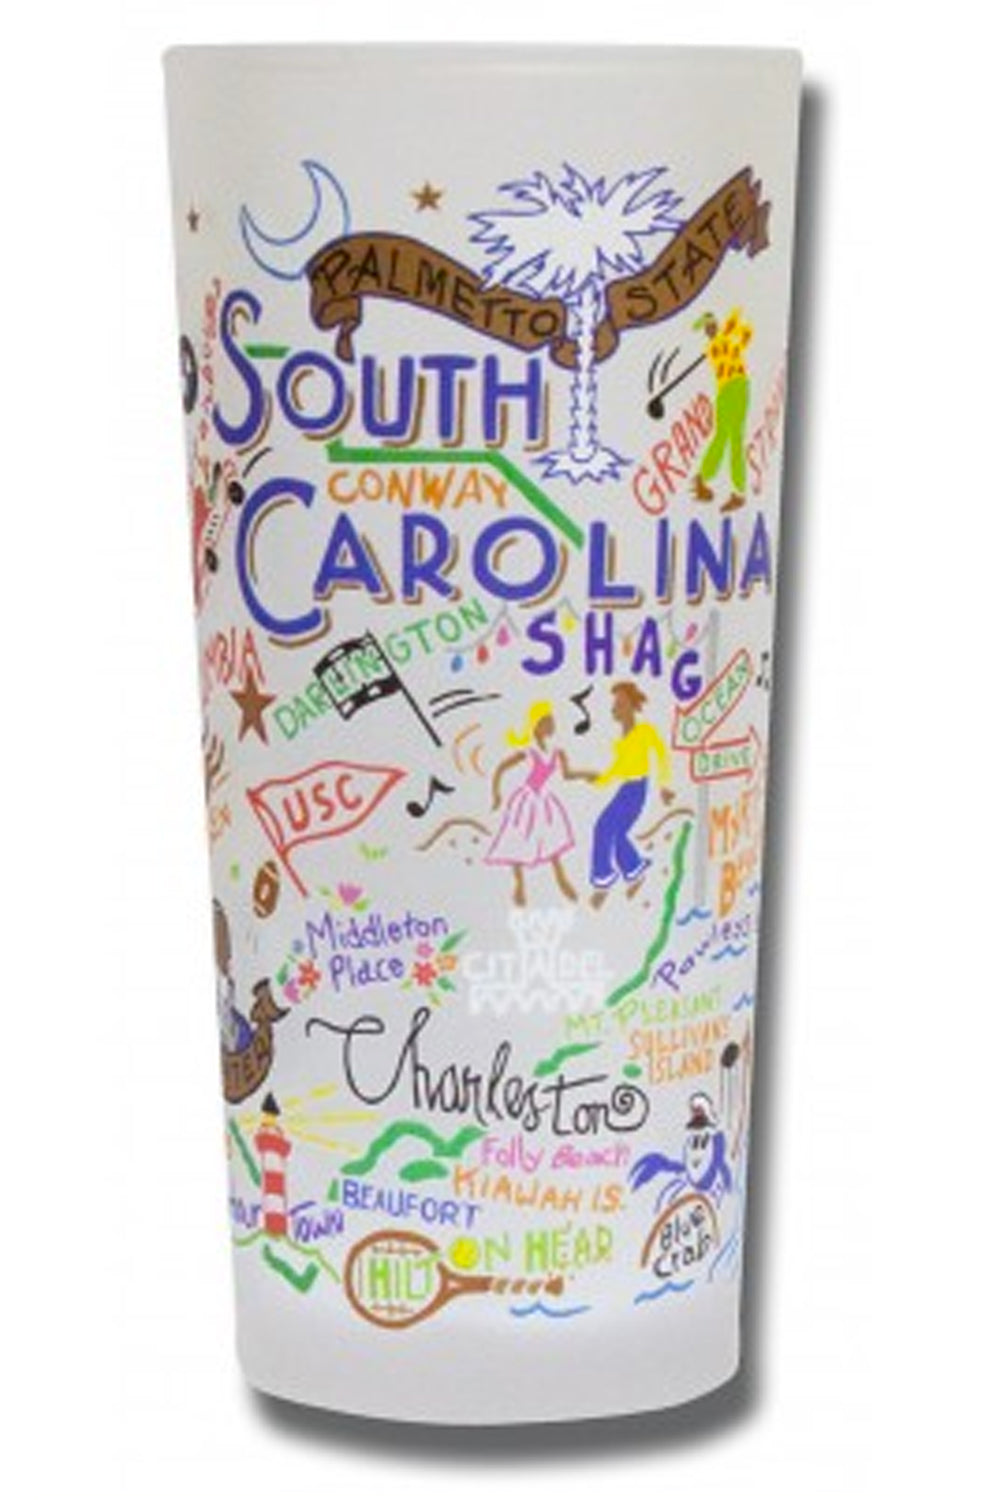 Frosted South Carolina Tumbler Cup